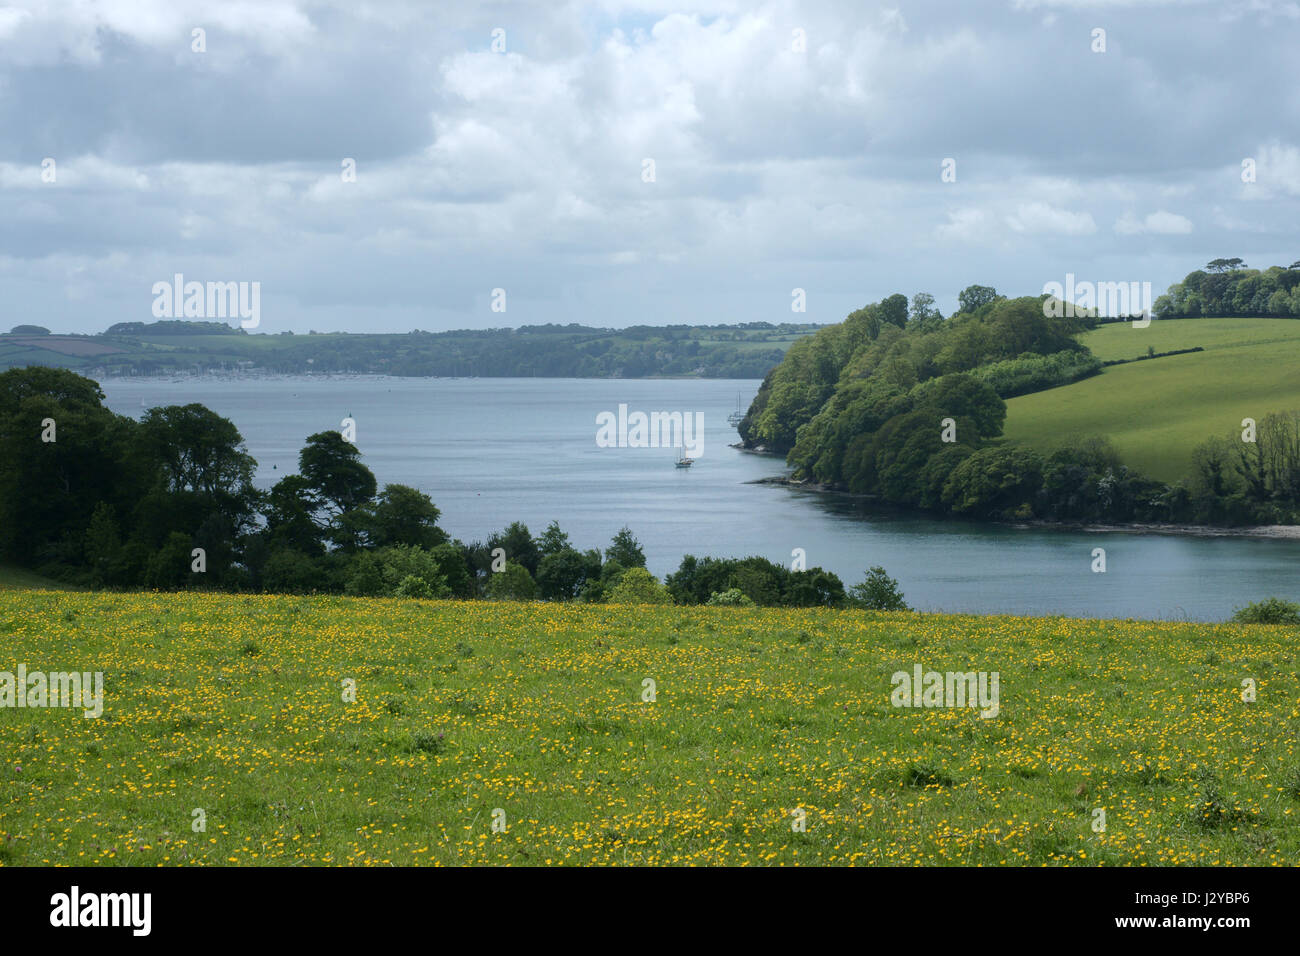 The river Fal - Stock Image